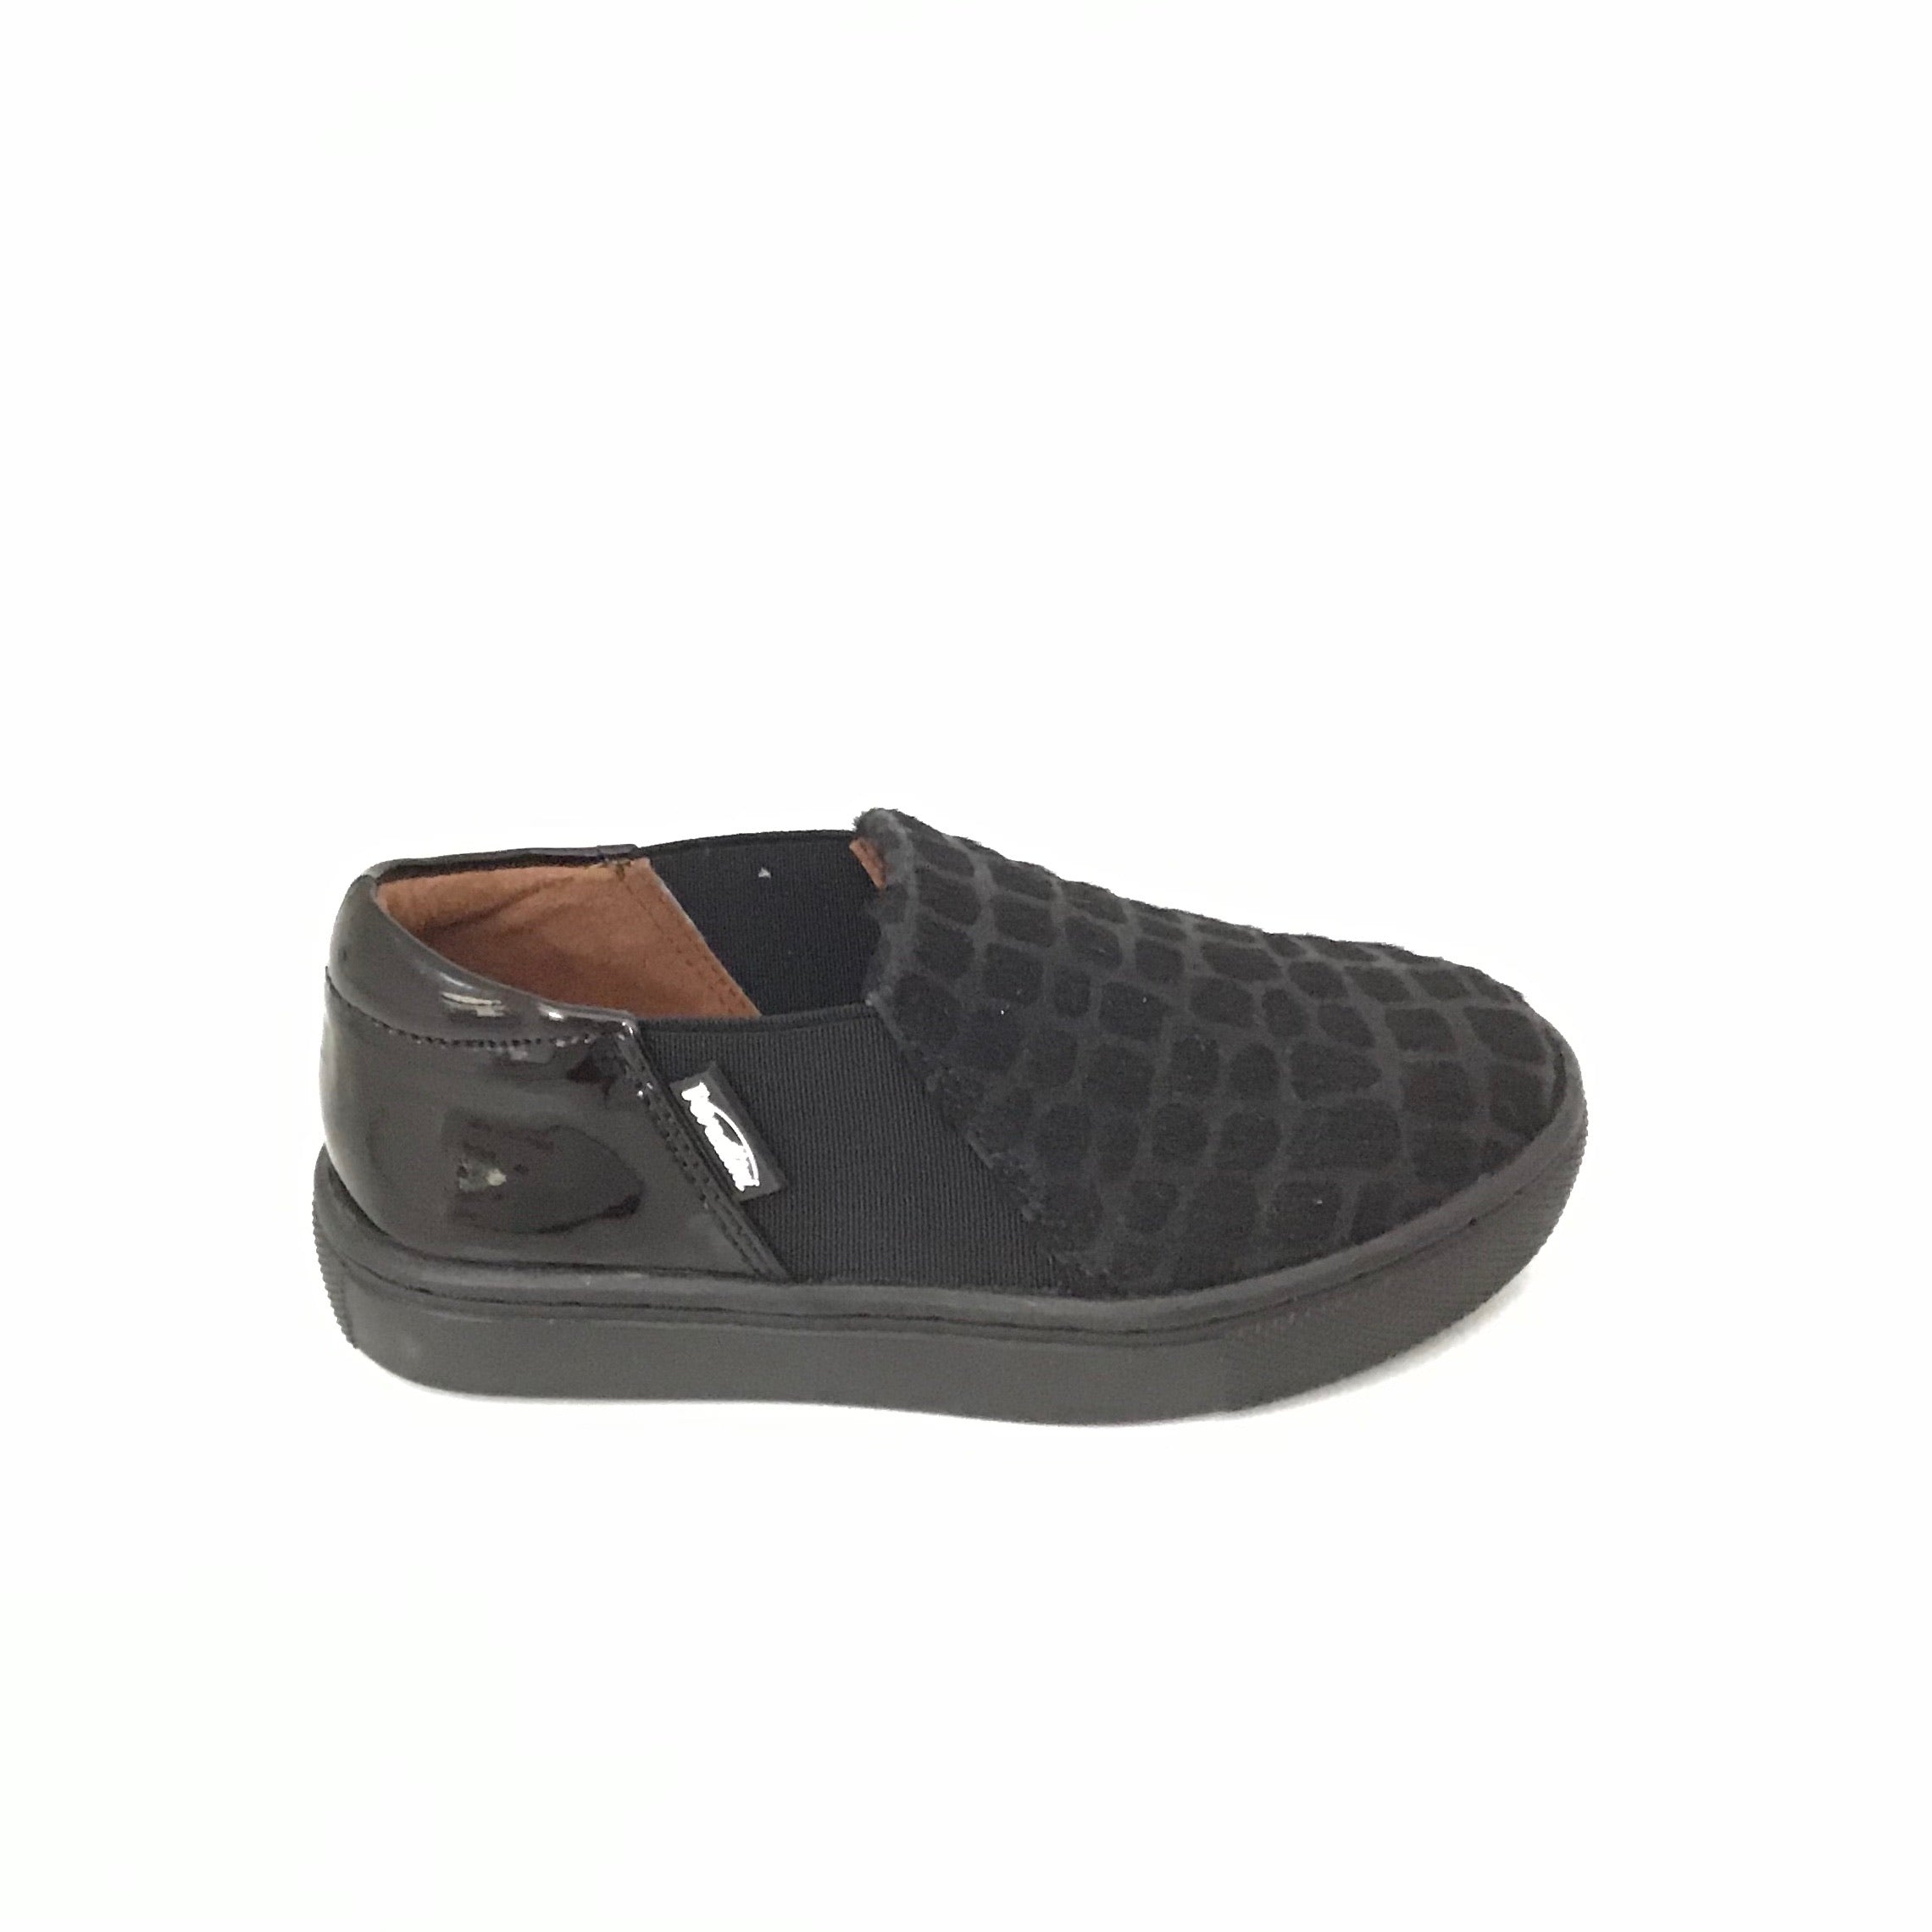 Venettini Black Pony Hair Slip On